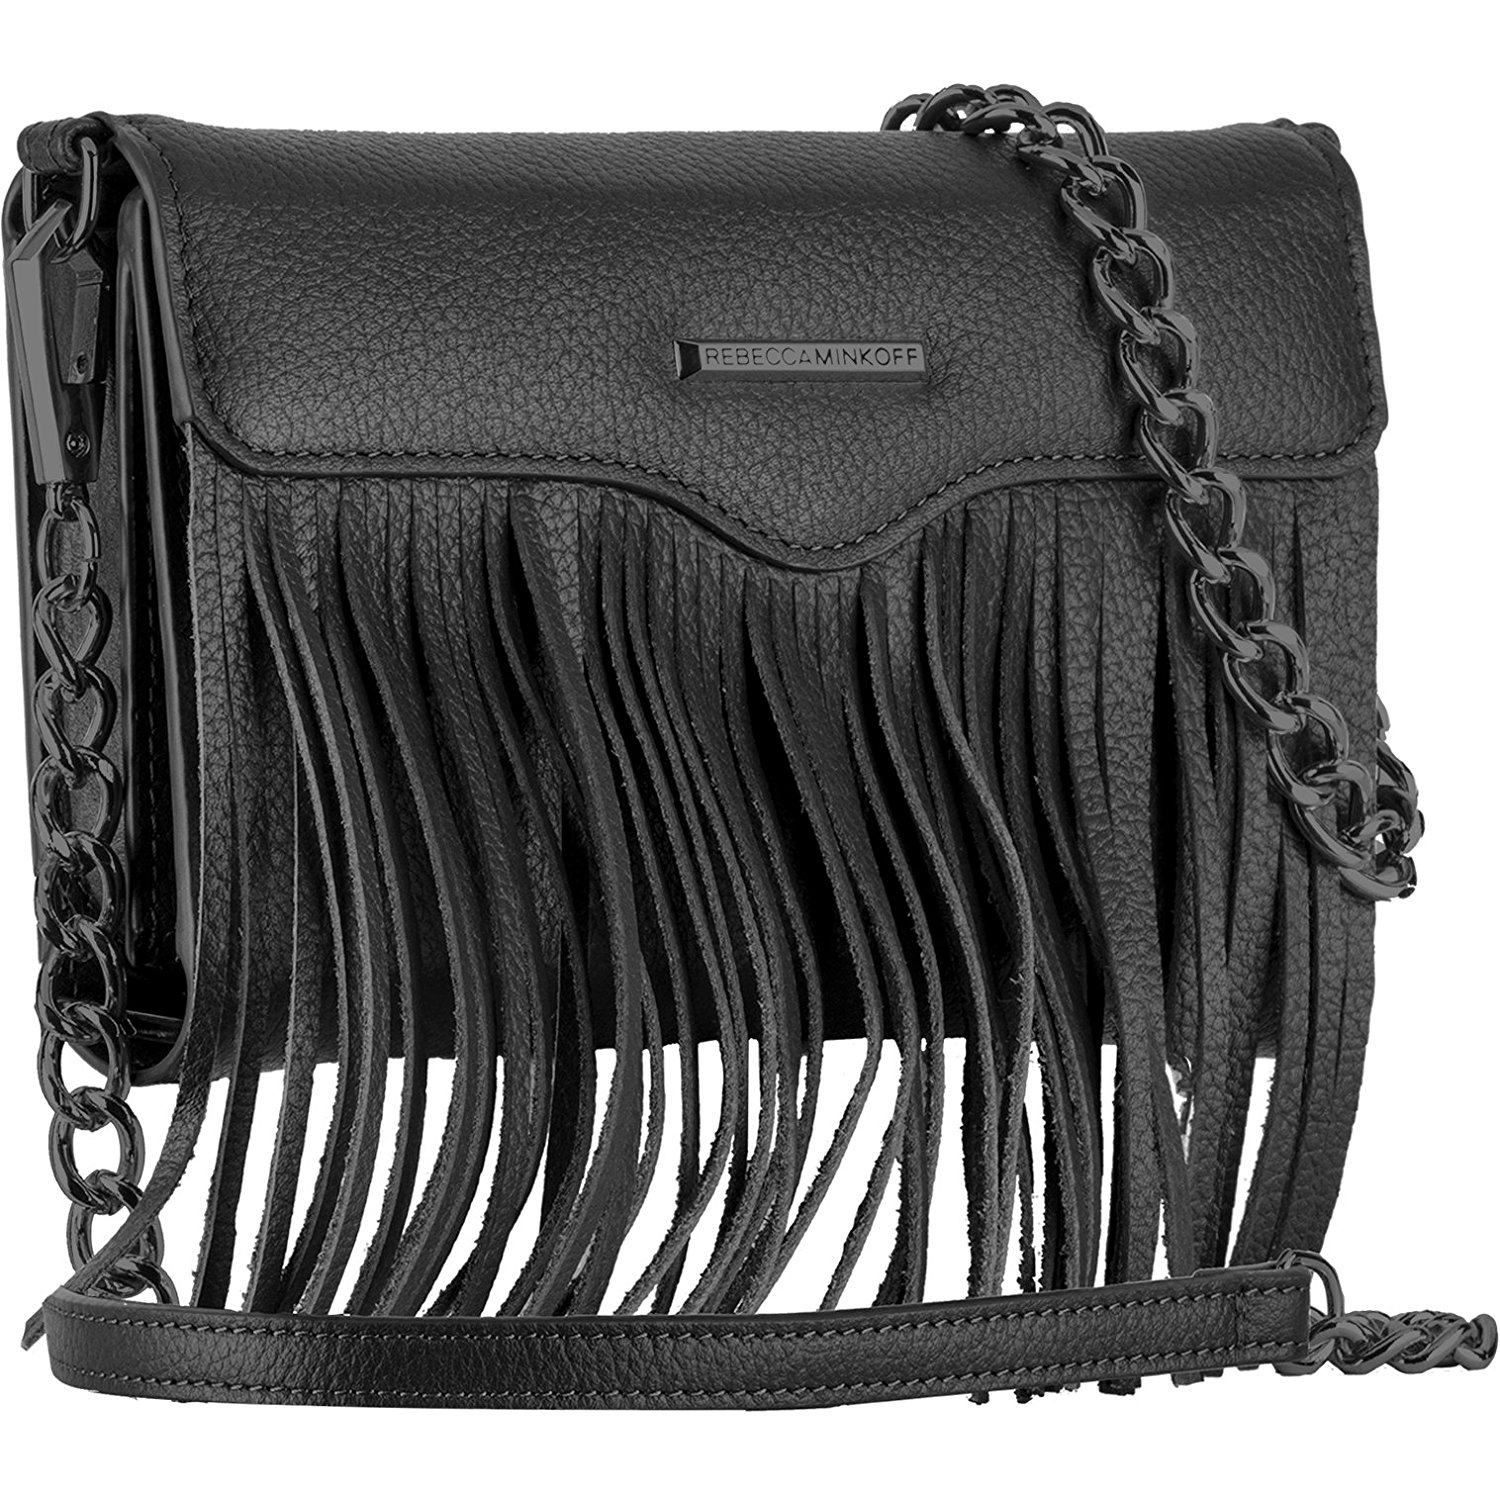 iPhone8/iPhone8 Plus/iPhone7/7 Plus対応 日本正規品 REBECCA MINKOFF × Case-Mate Crossbody with Fringe Black 5インチ スマホ 汎用 レベッカミンコフ ブラック クロスボディ ウィズ フリンジ CM032873